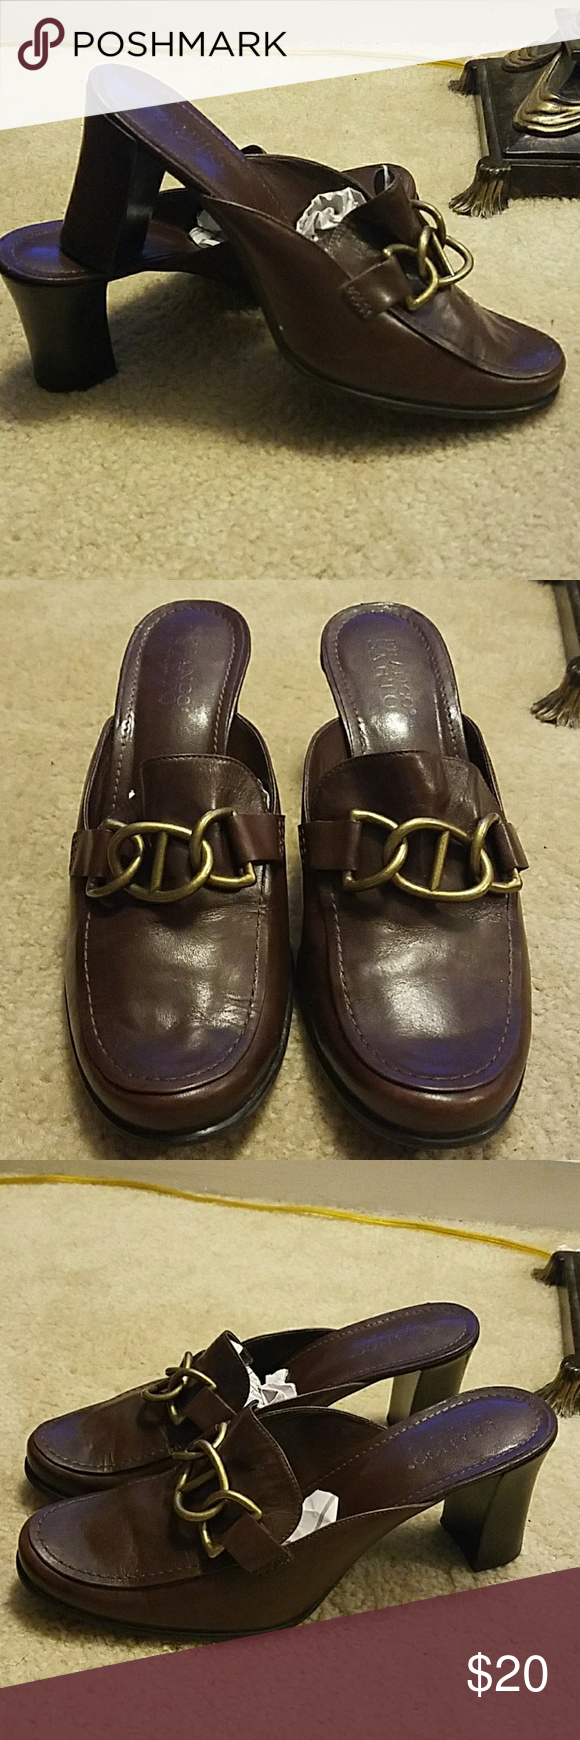 Franco Sarto heeled mules Beautiful brown leather mules in great condition. Size 9. Franco Sarto Shoes Mules & Clogs